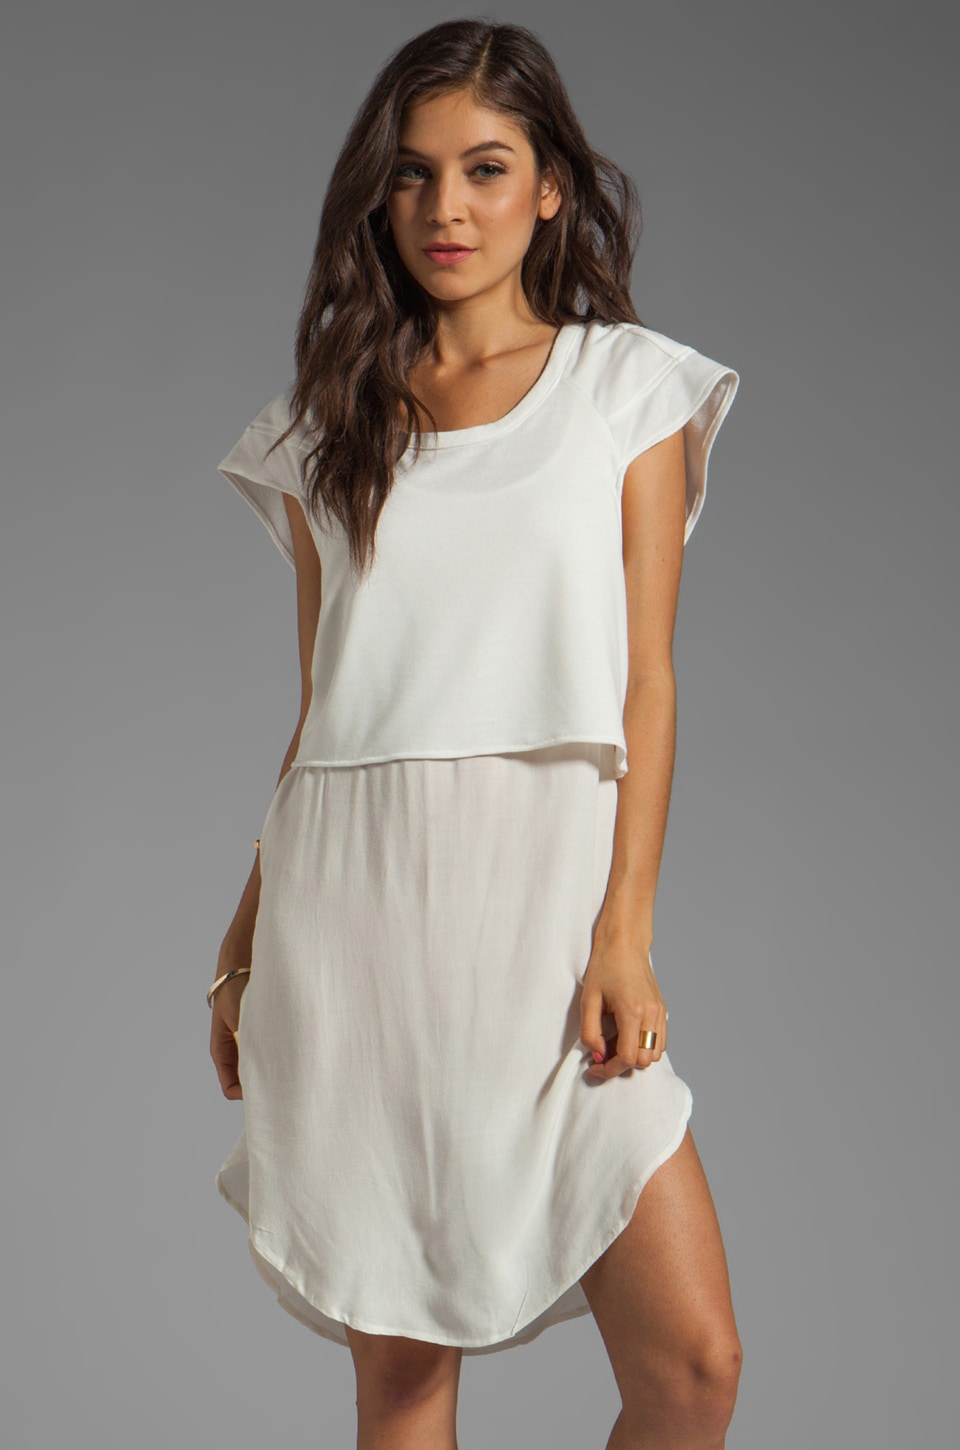 Nicholas K Kira Dress in Ivory